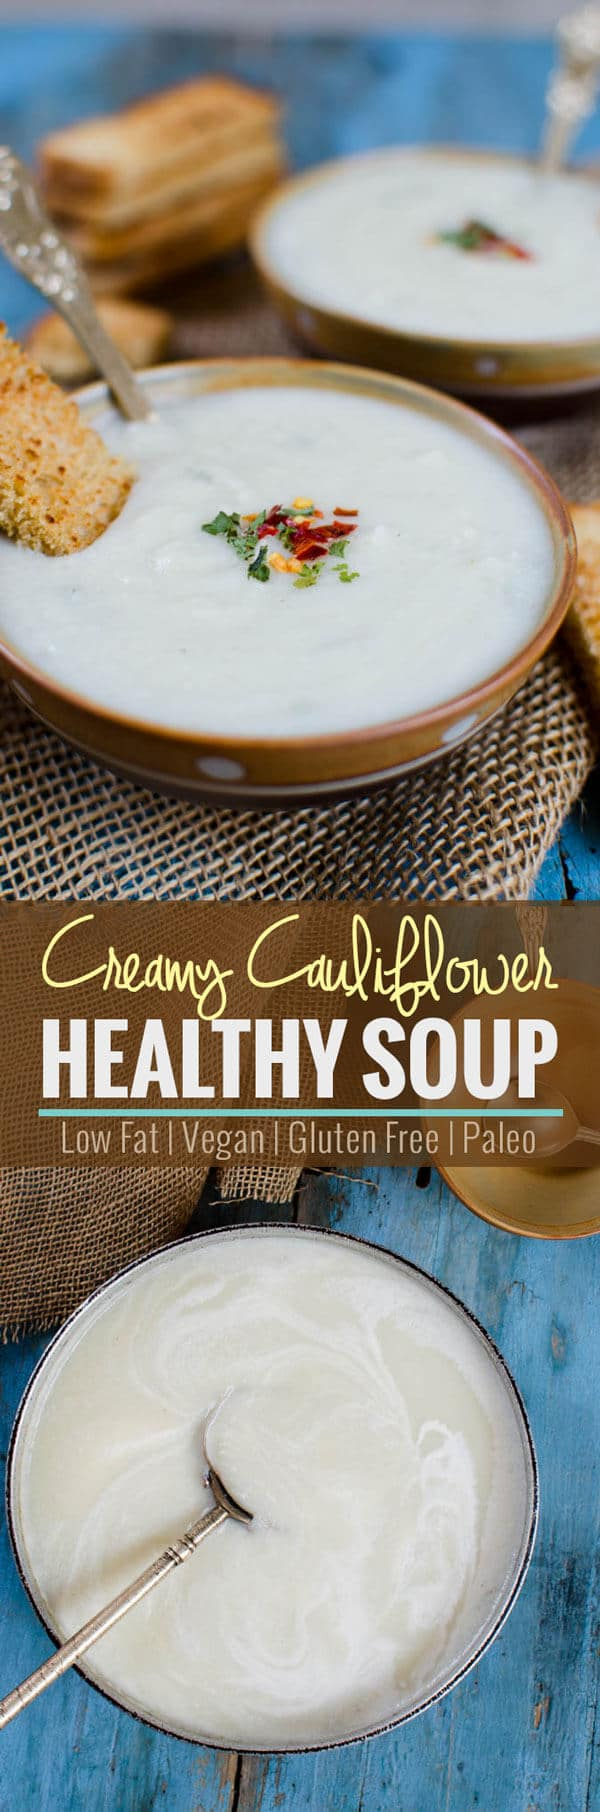 Vegan and gluten free creamy cauliflower soup. Know the secret ingredient that makes it creamy and healthy.   watchwhatueat.com.